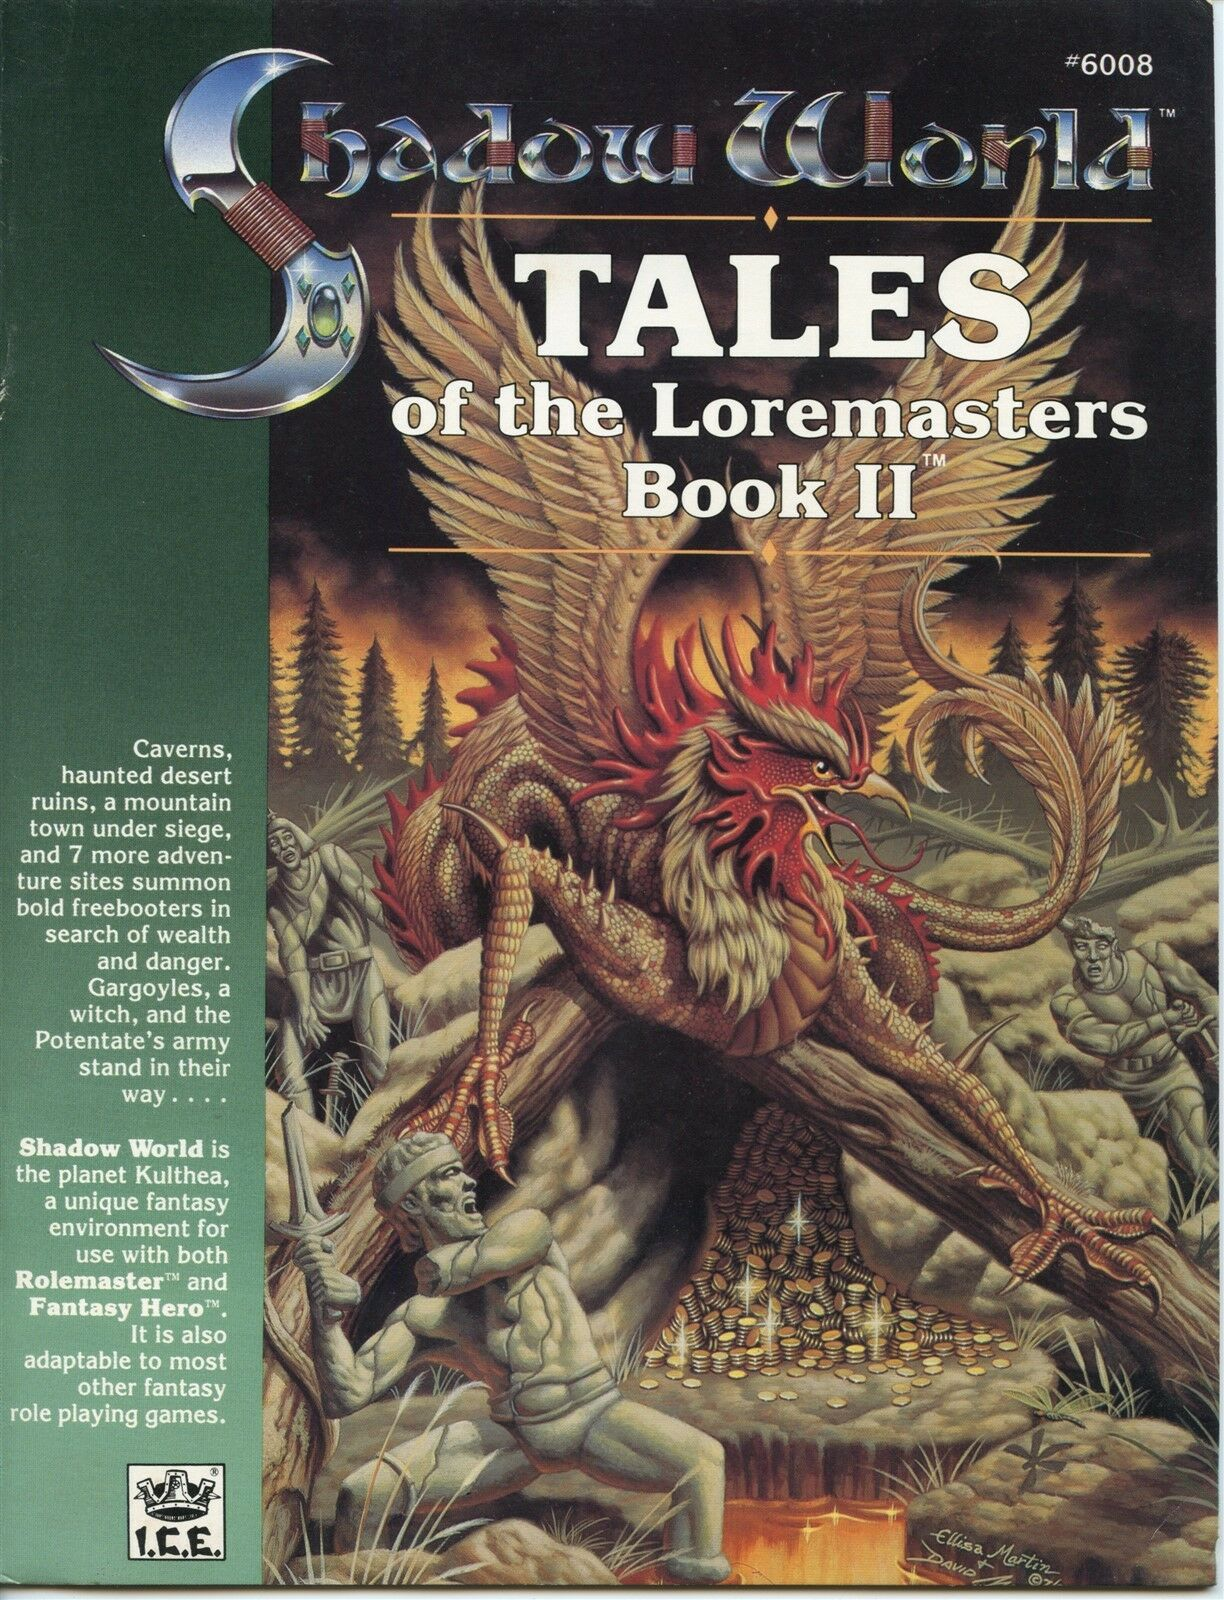 SHADOW WORLD TALES OF THE LOREMASTERS BOOK 2 ICE 1989 1ST PRINT VF